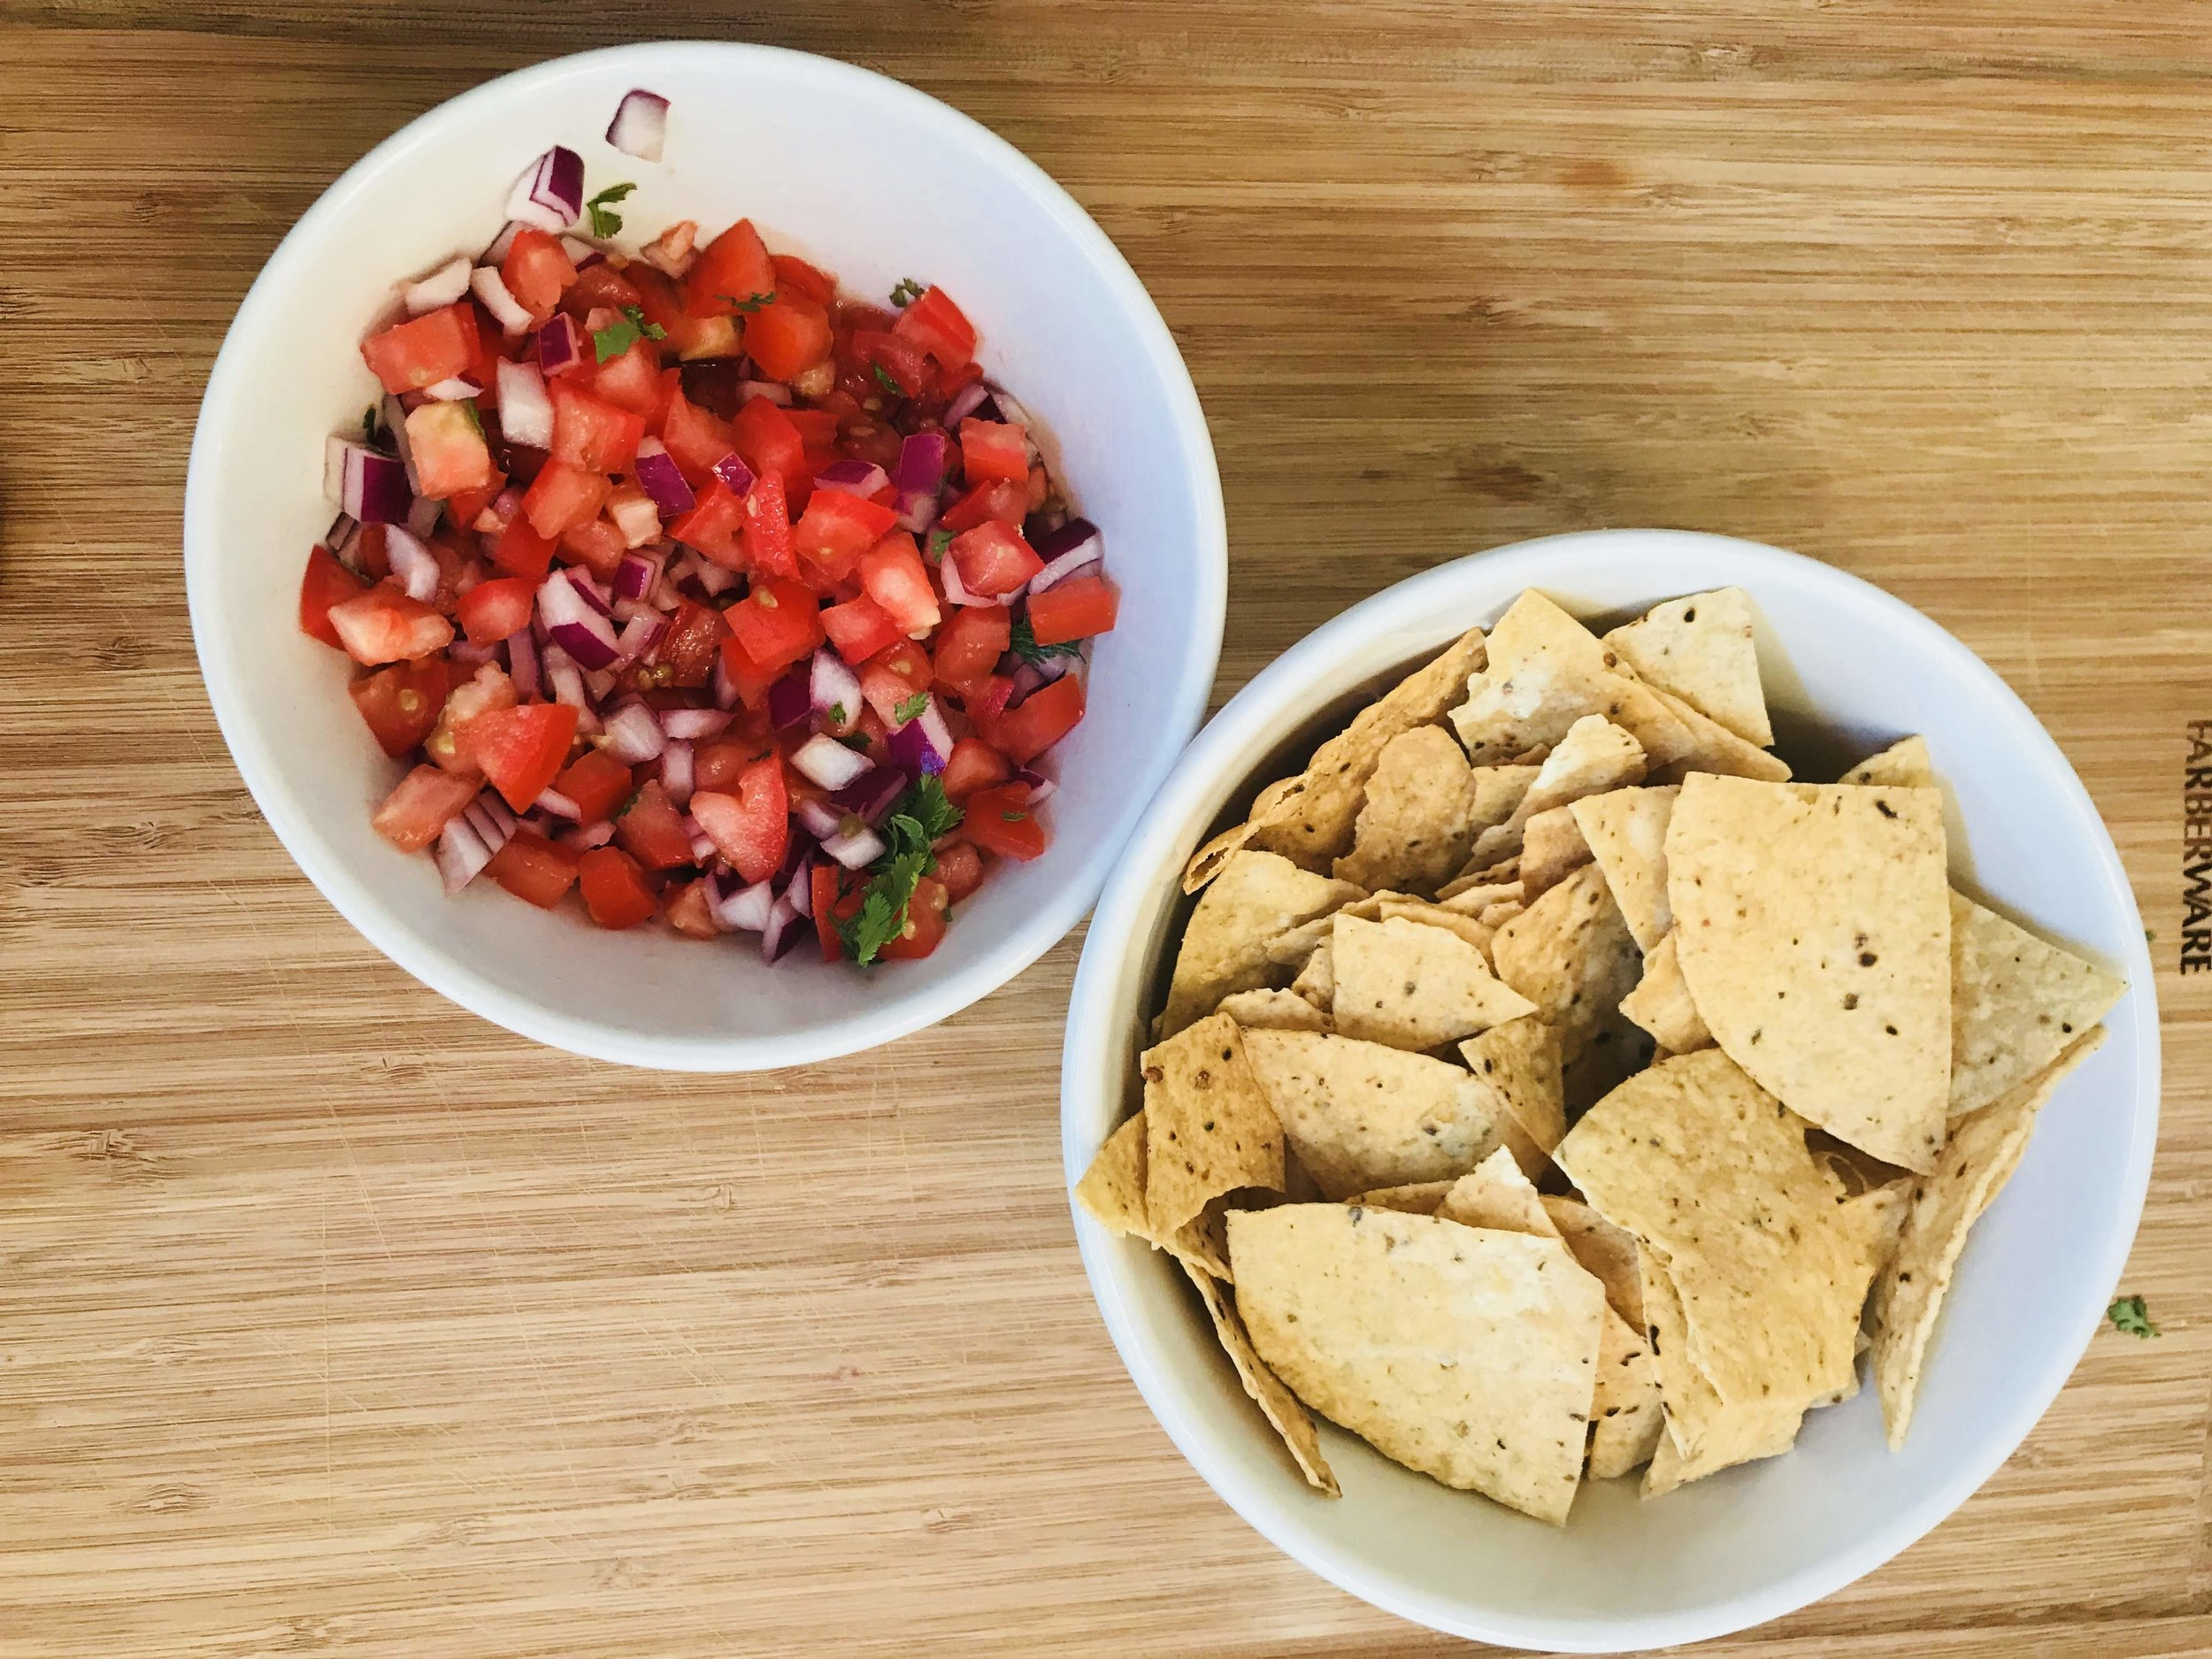 Pico de Gallo served with chips is a tasty appetizer for entertaining guests.